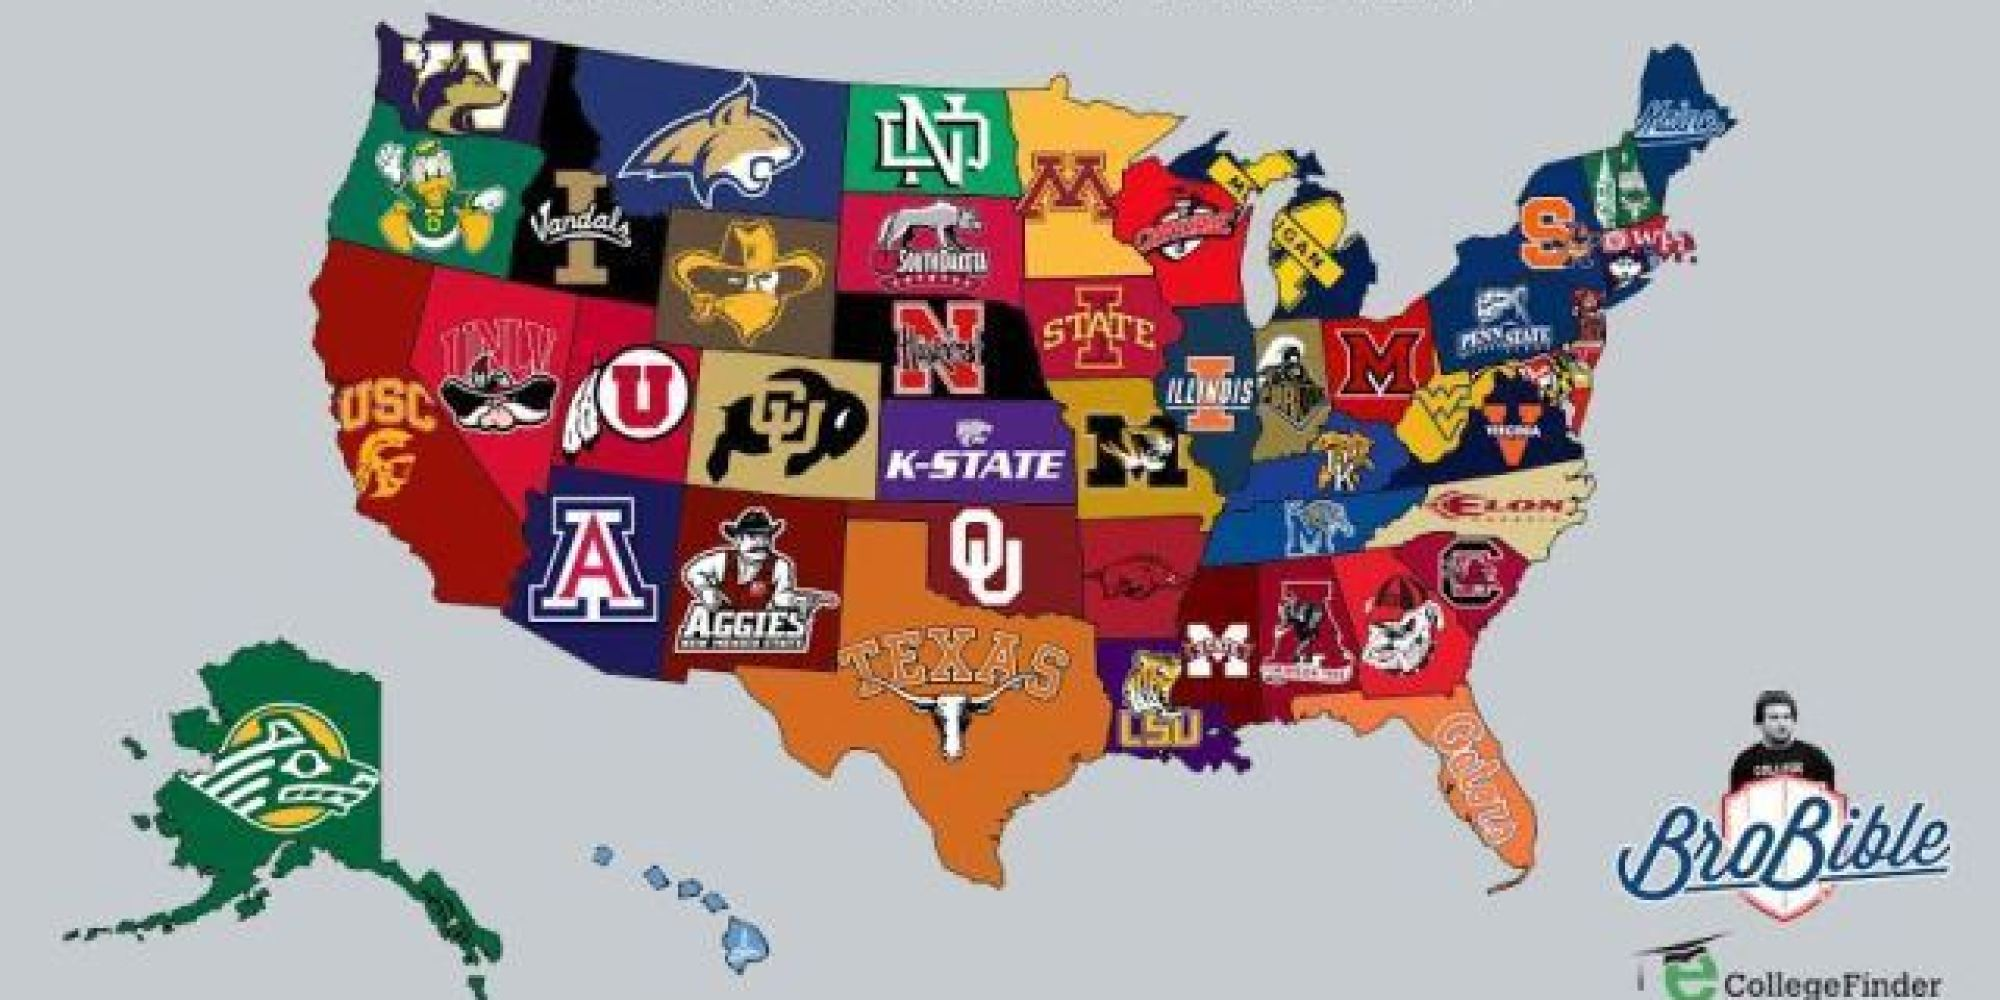 United States Supreme >> BroBible's Frattiest Colleges In America | HuffPost